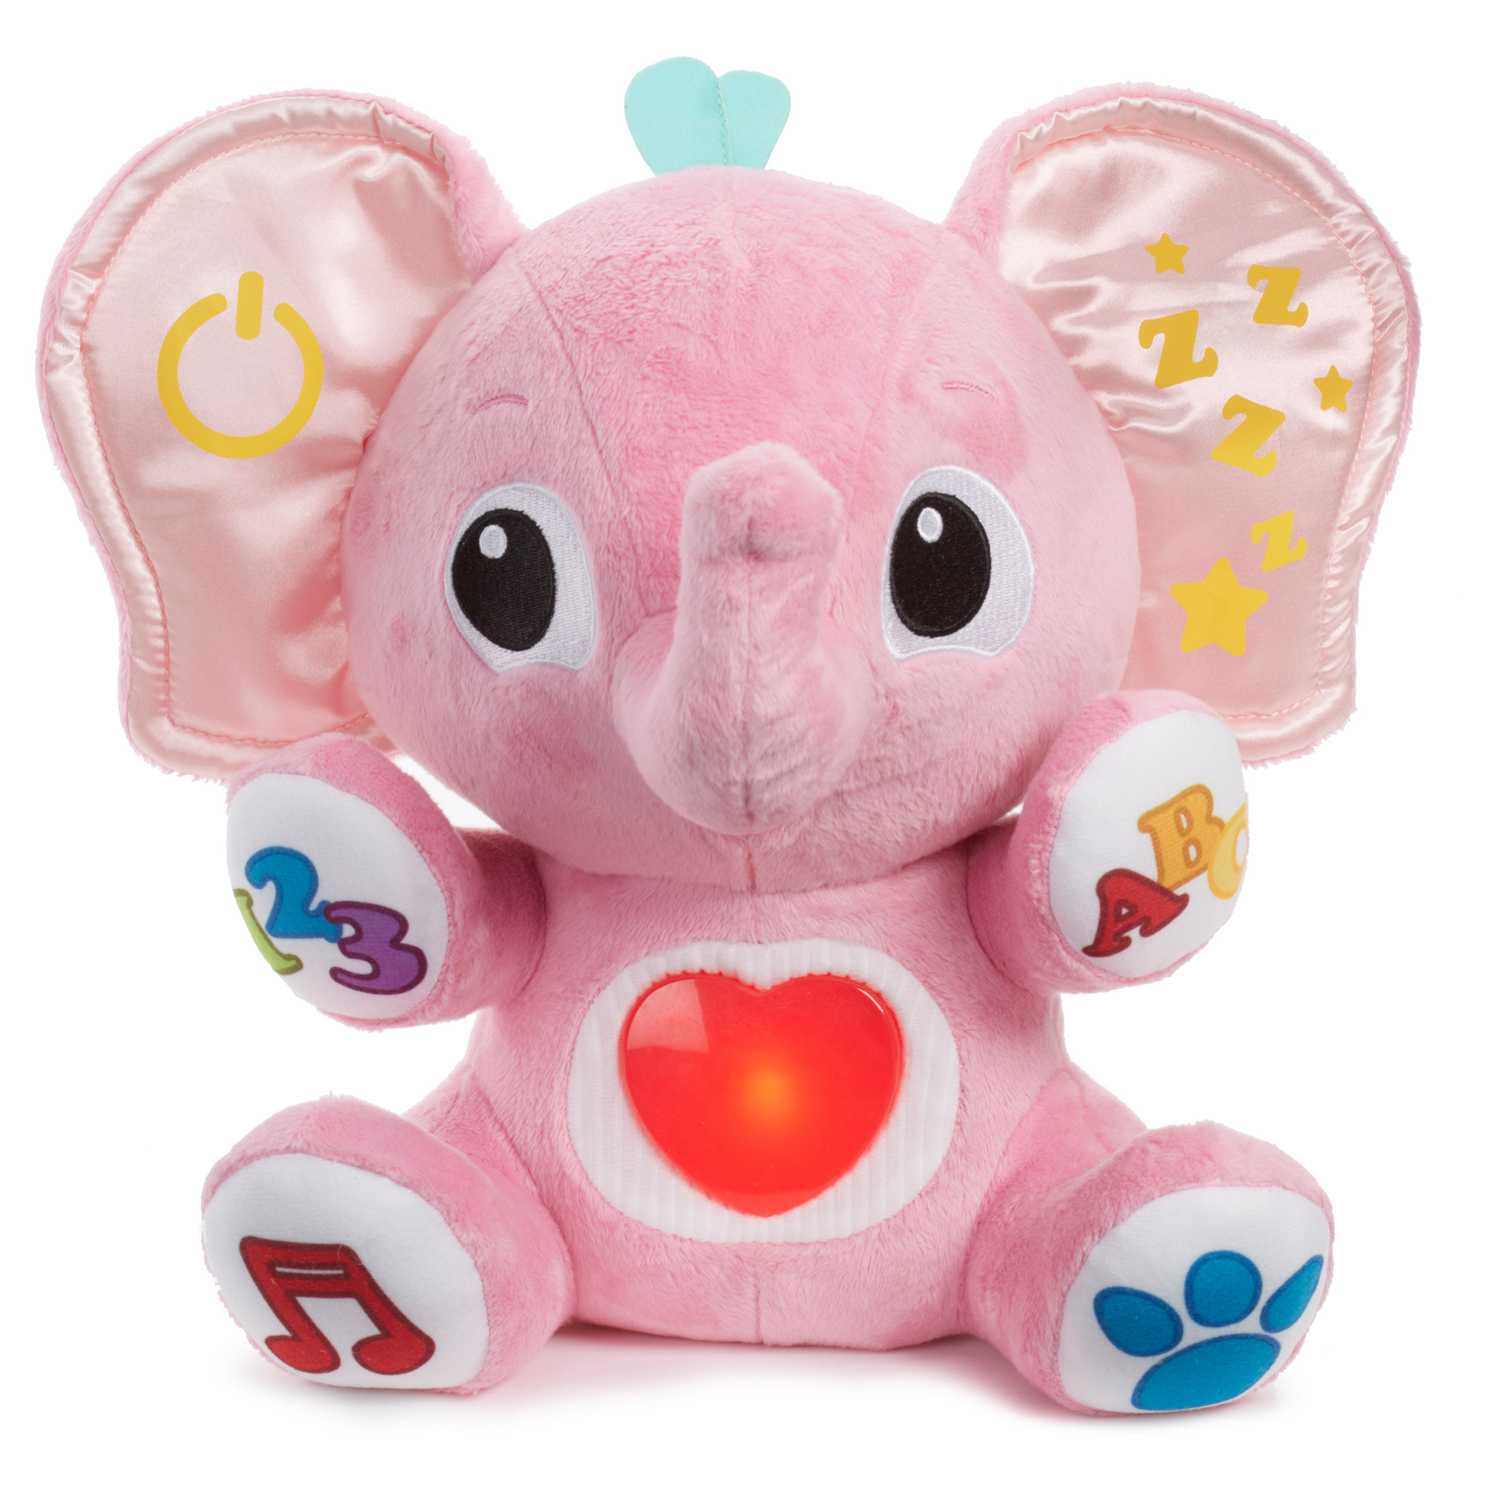 Little Tikes My Buddy- Lalaphant Learning Toy, Plush